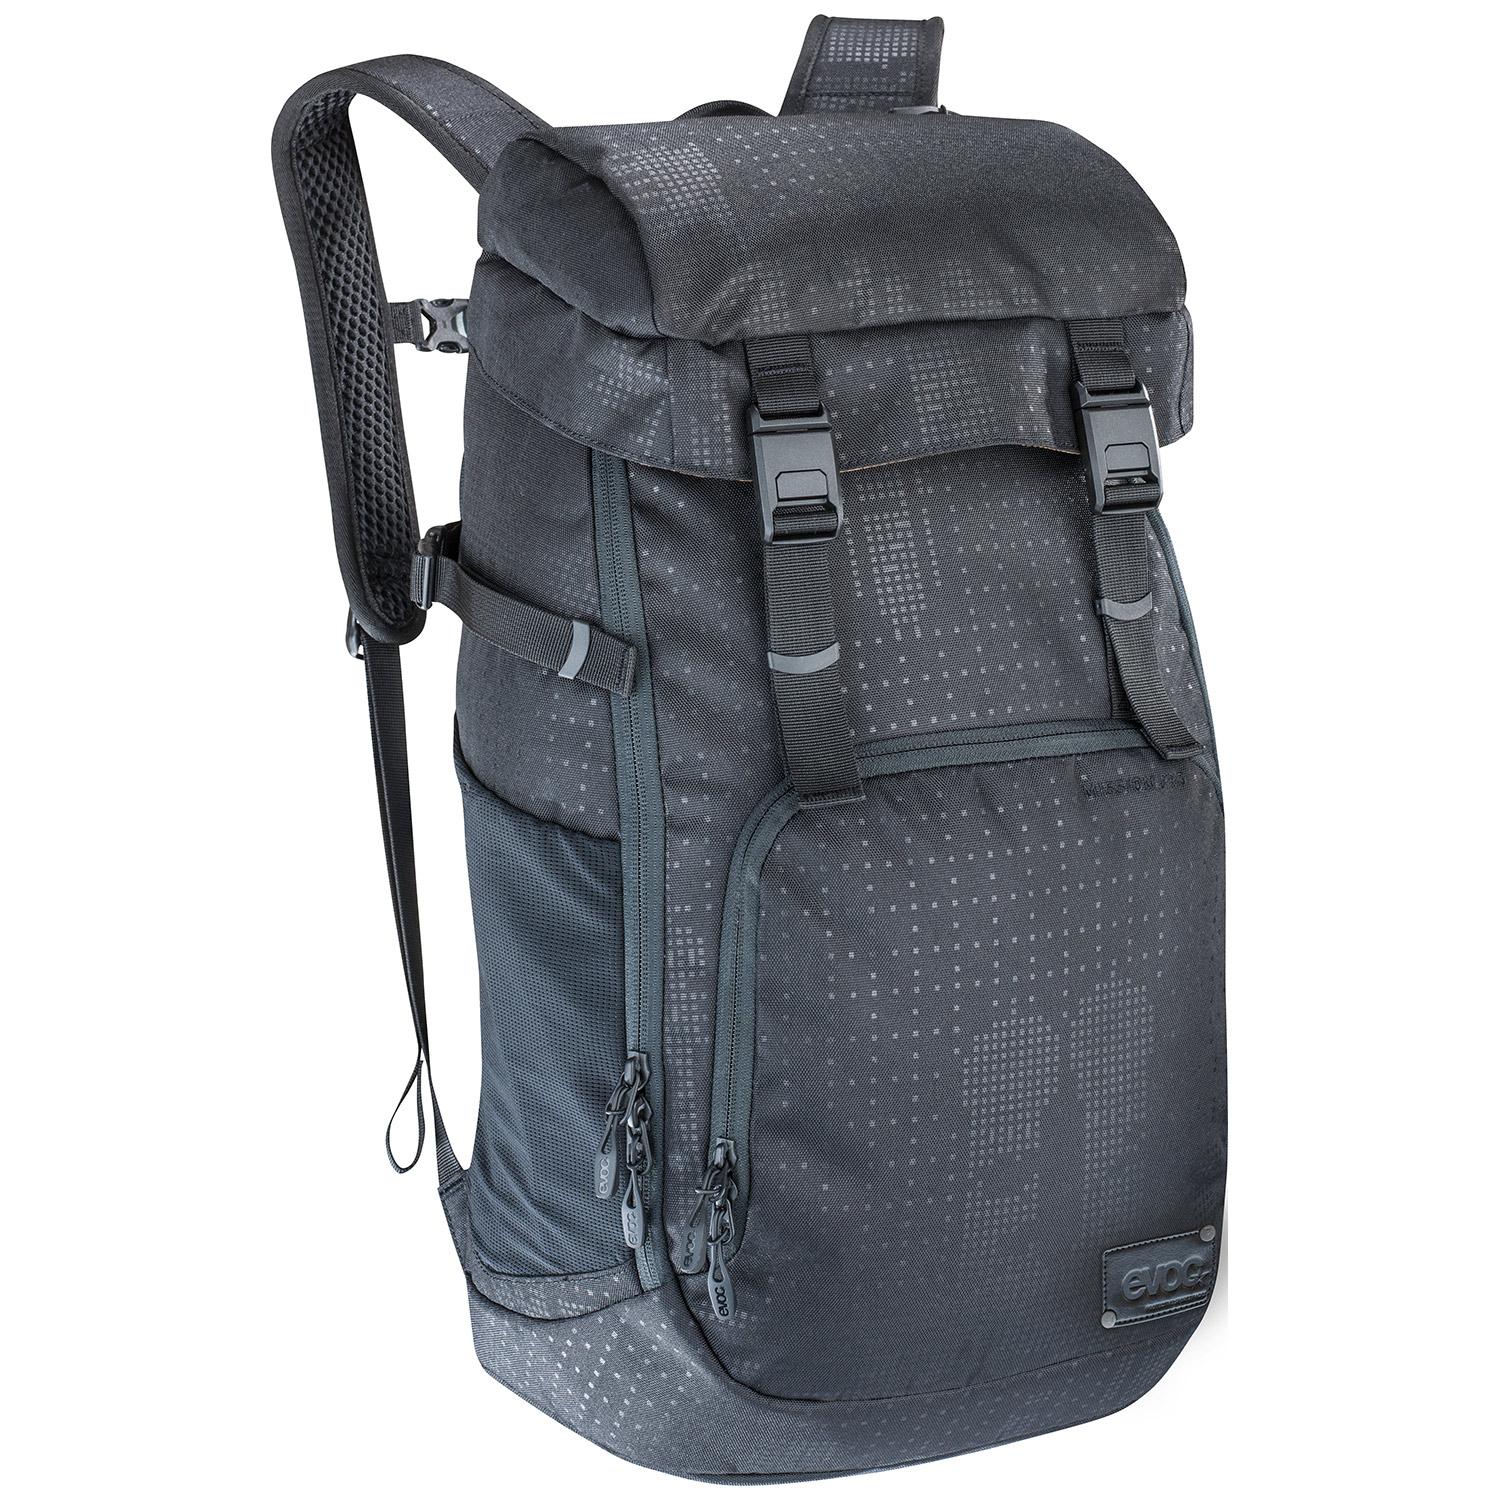 Mission Pro BackPack - Technically, this has nothing to do with cycling.But I have yet to find a better, more convenient bag for travelling, so I feel like it would be mean not to share. All the pockets you need, none that you don't need. You will beat all your friends at the airport security!